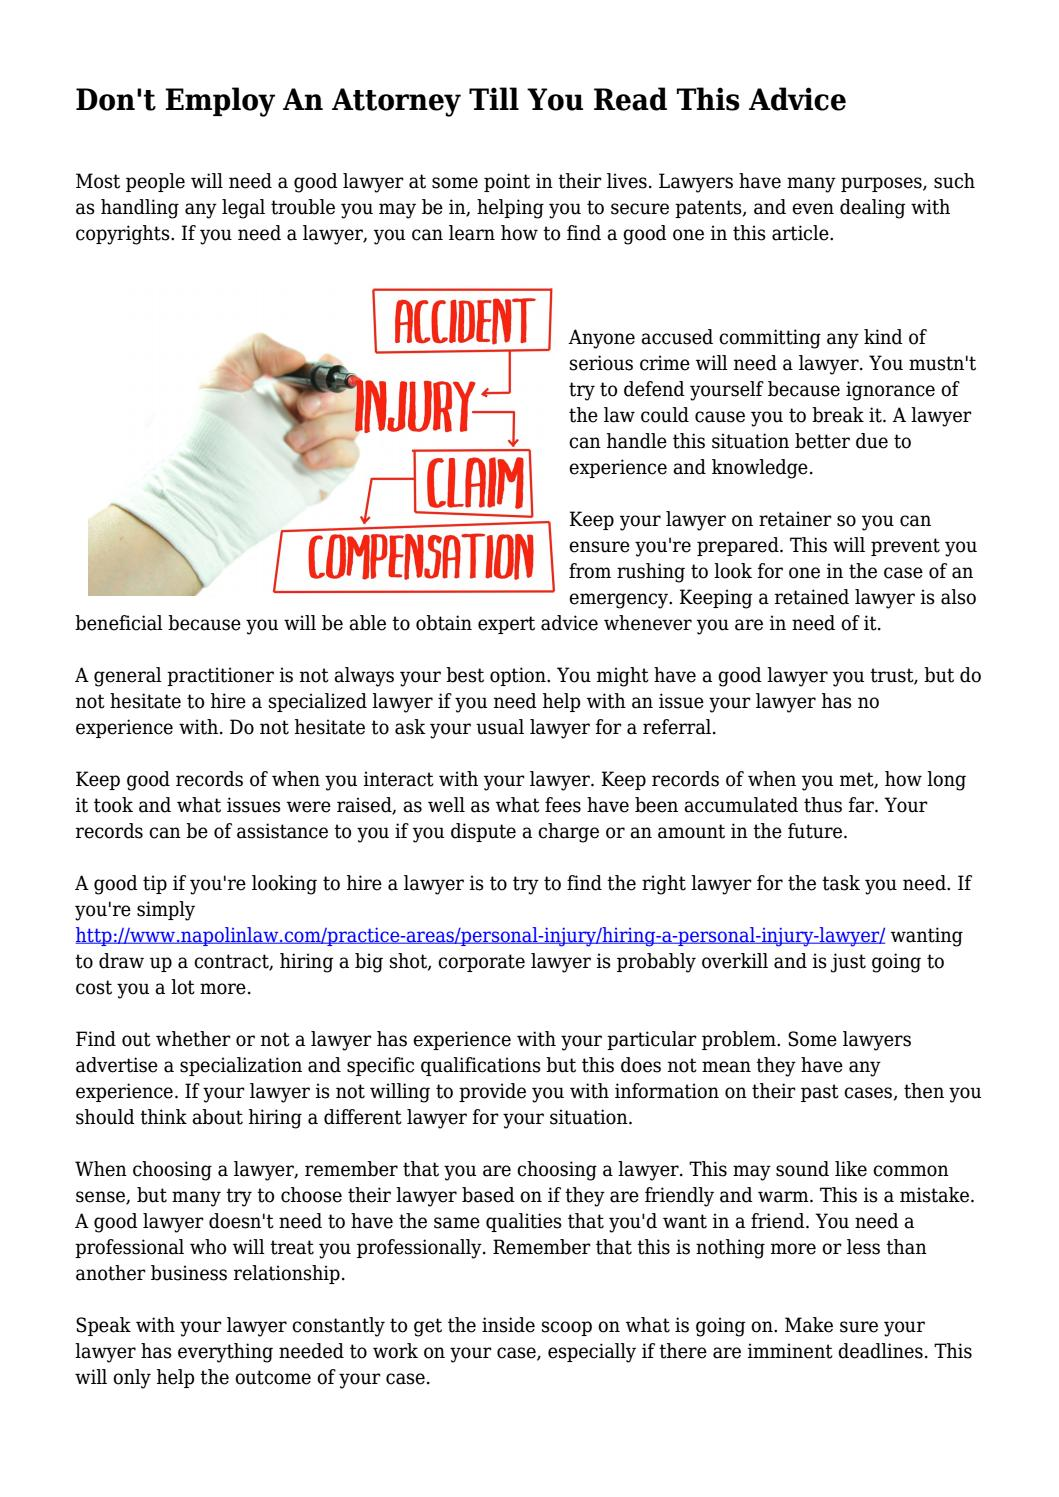 Only Read This If Youre Prepared To >> Don T Employ An Attorney Till You Read This Advice By Kimi70elke Issuu